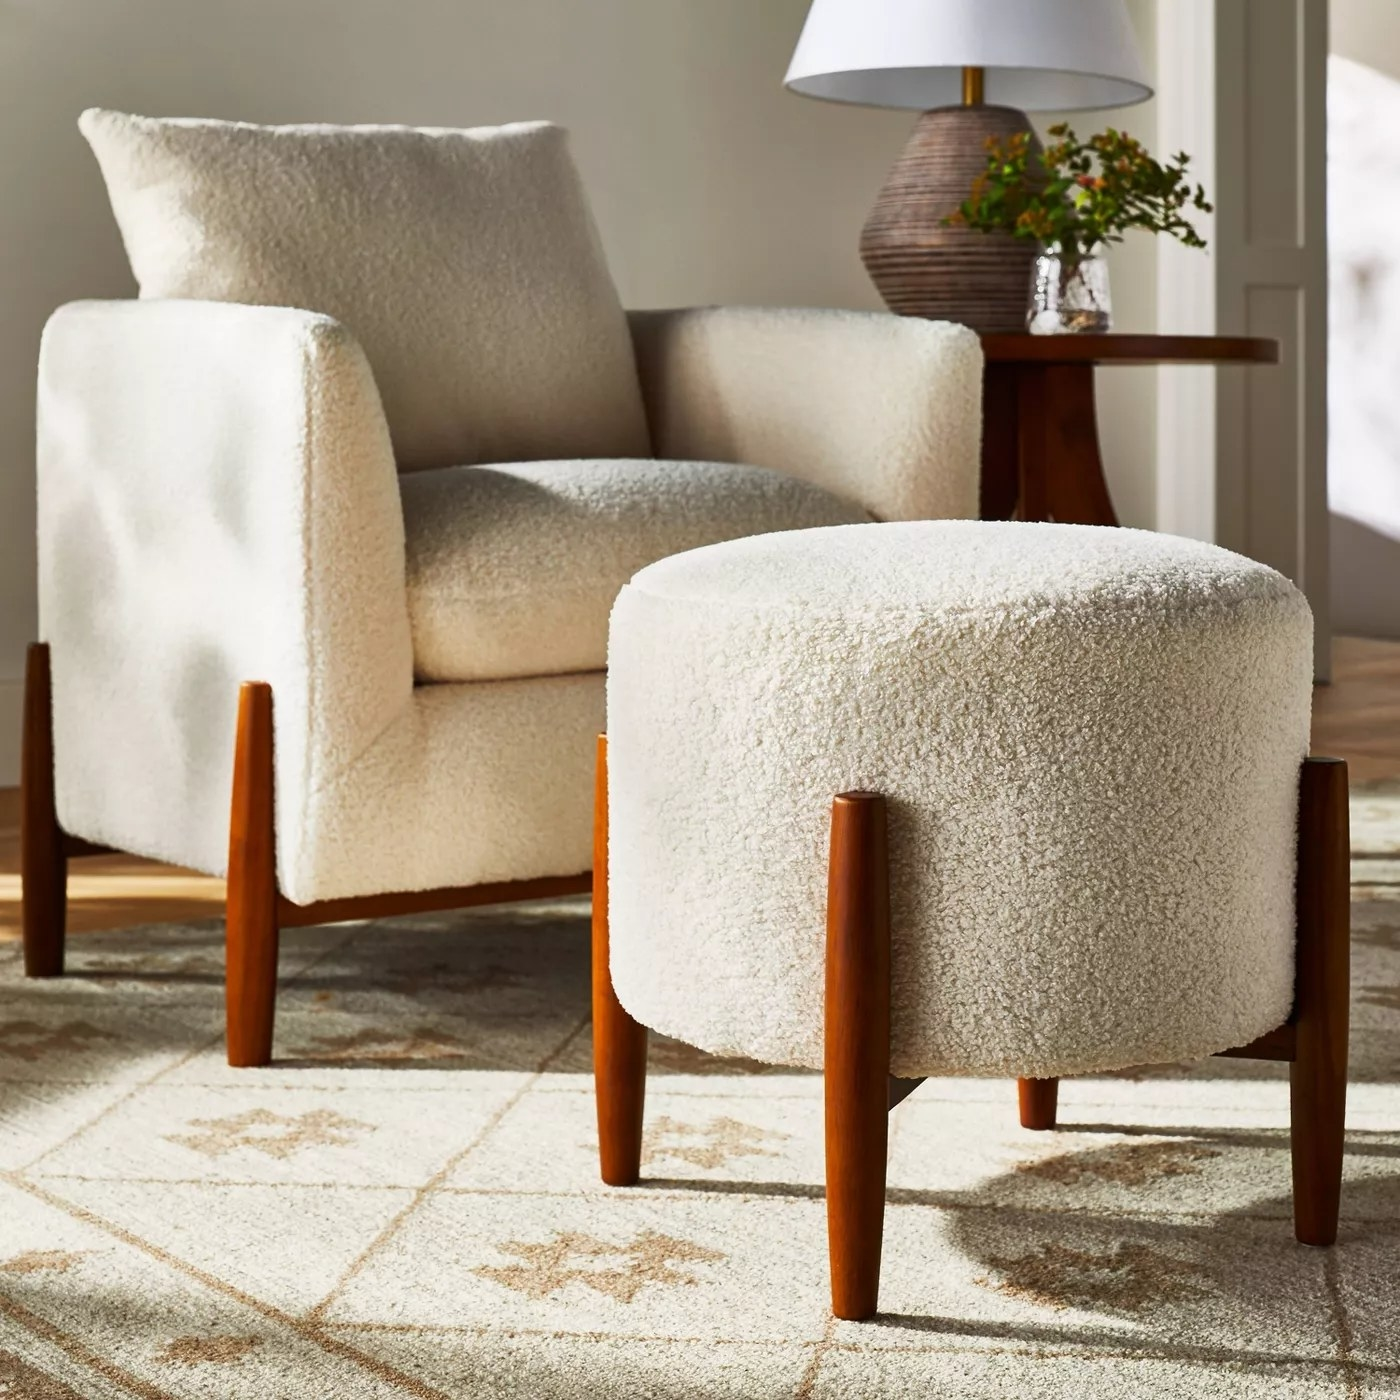 The ottoman placed in front of a matching accent chair